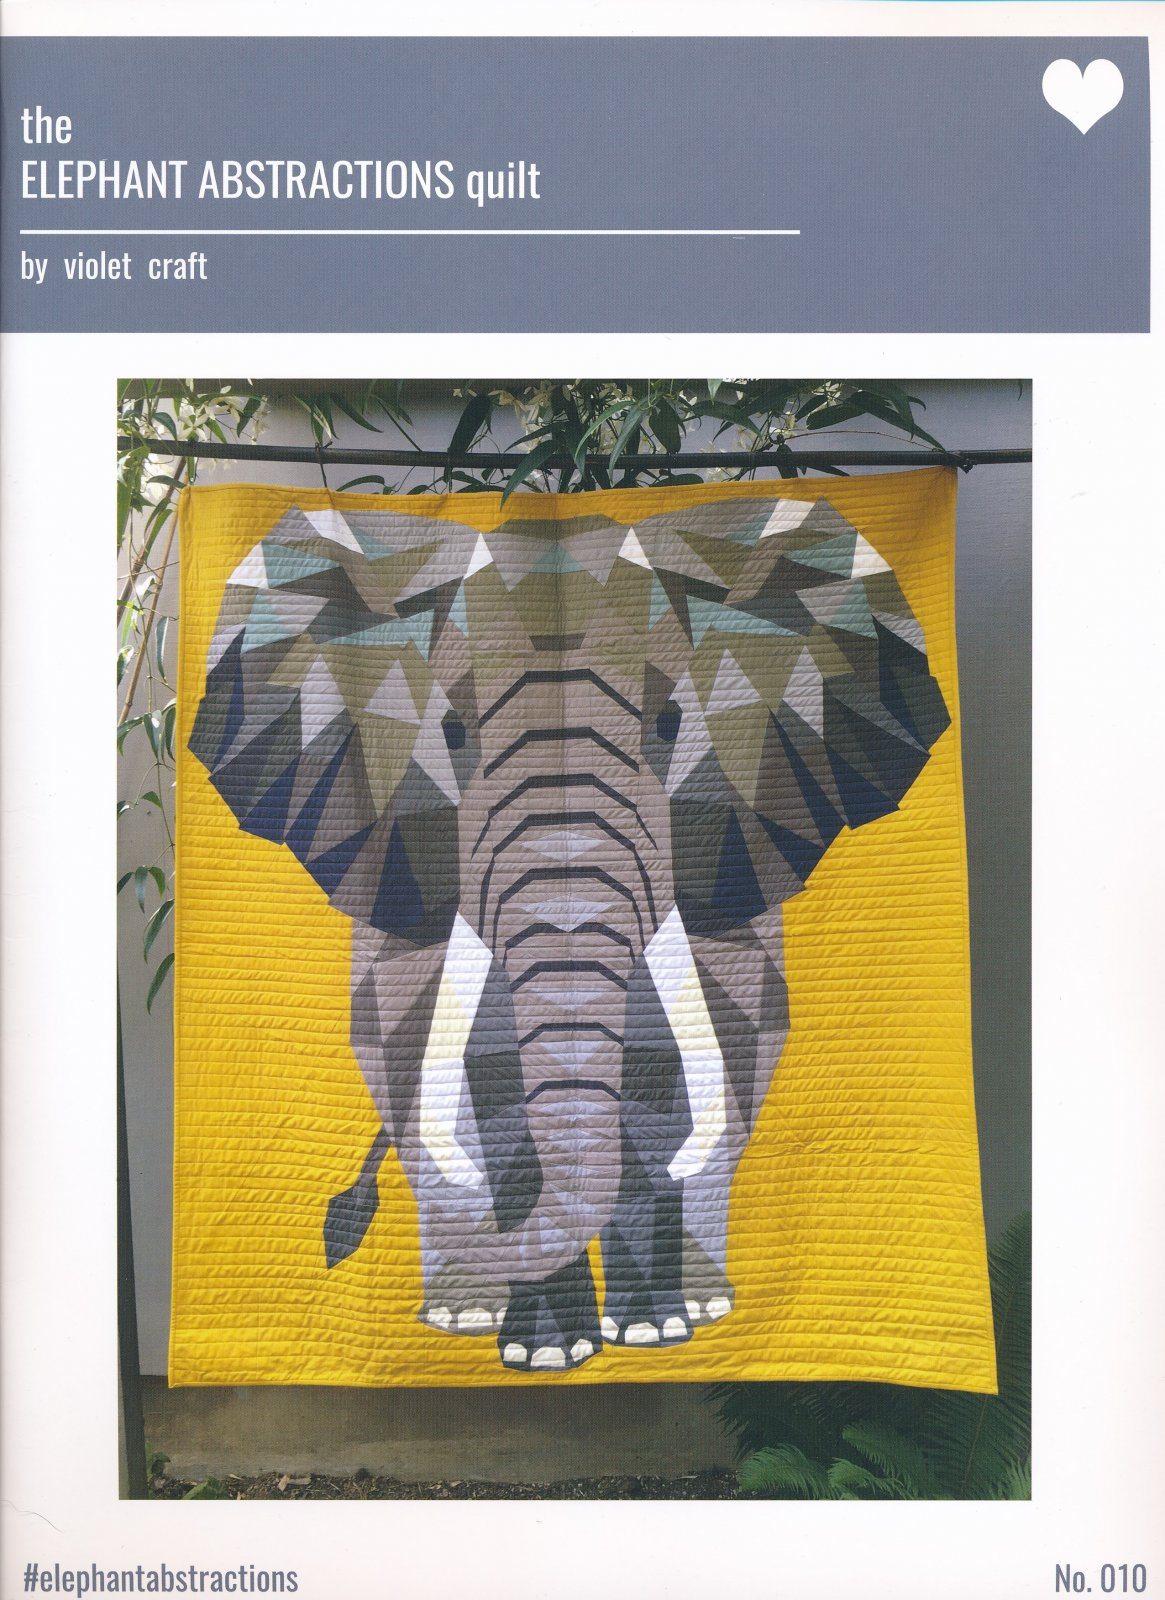 Jungle Abstractions Quilt Pattern: The Elephant